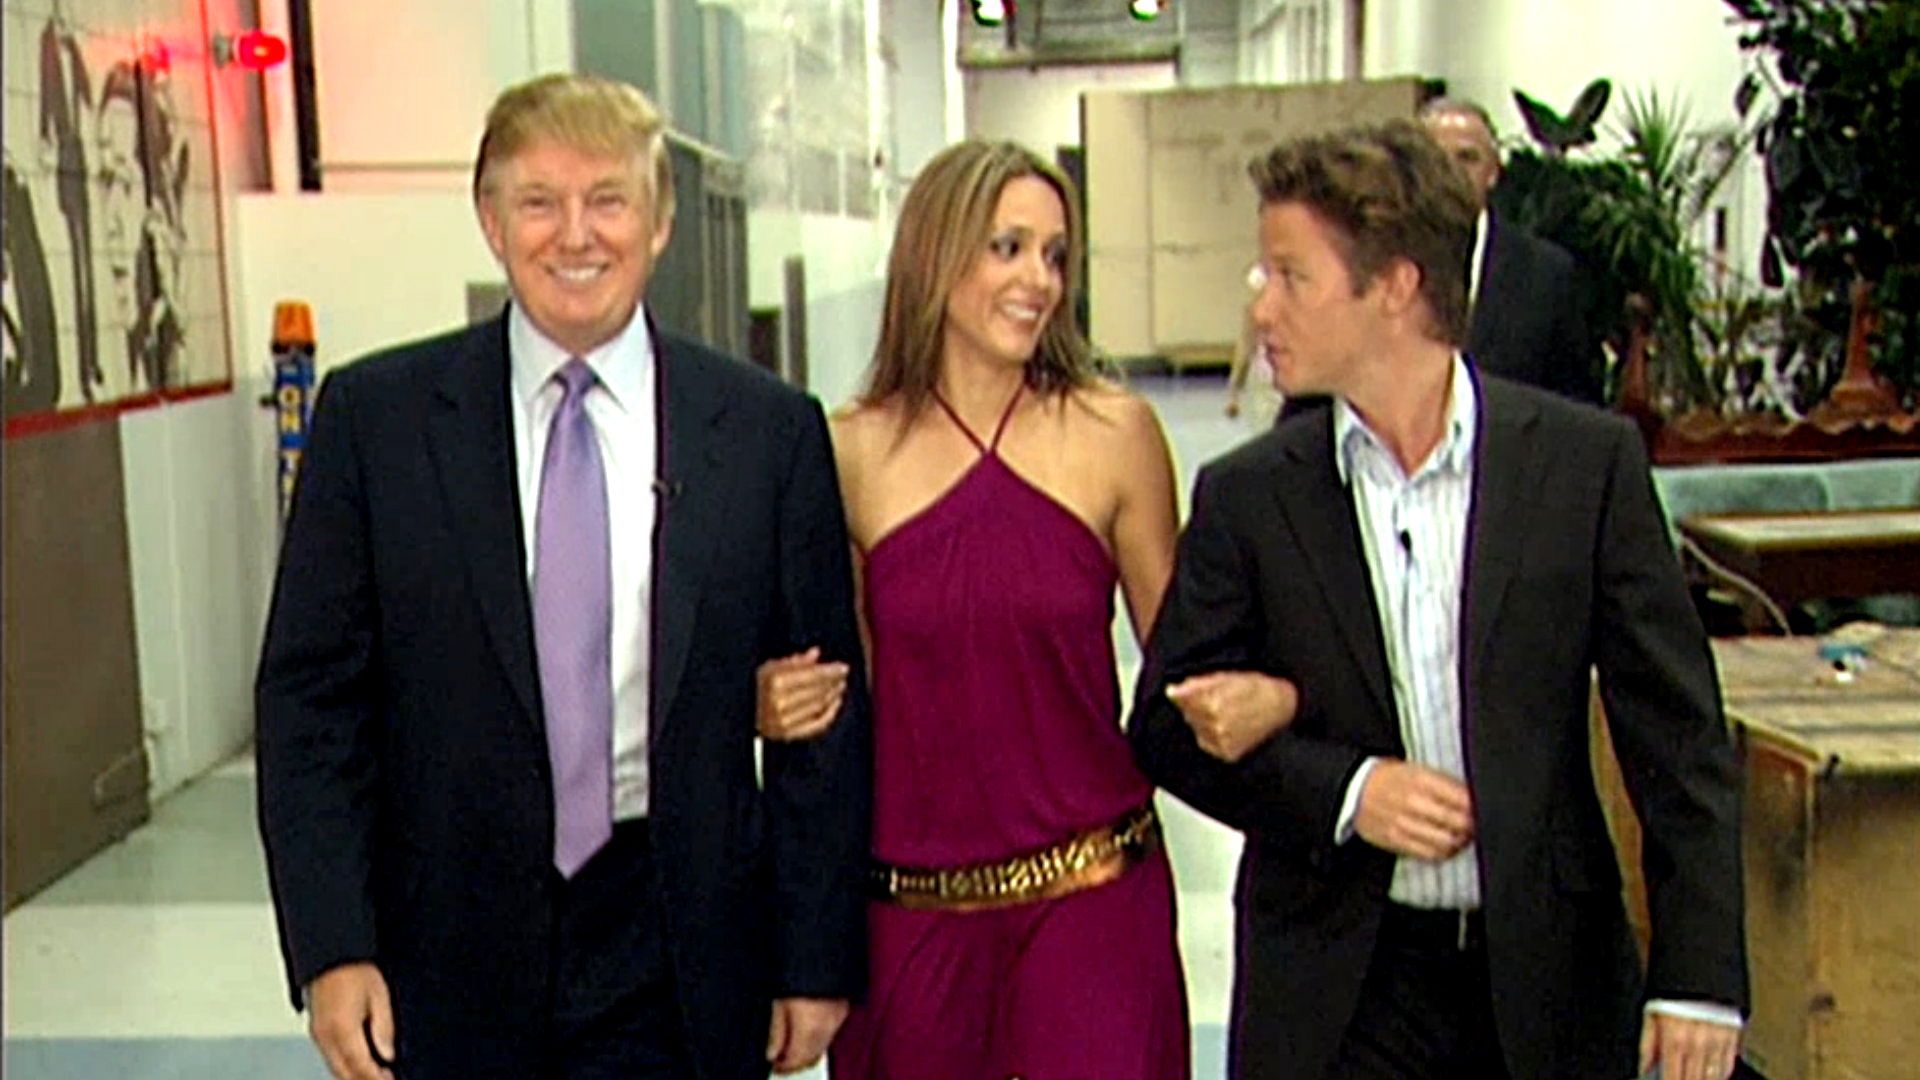 Access HollyWood tape